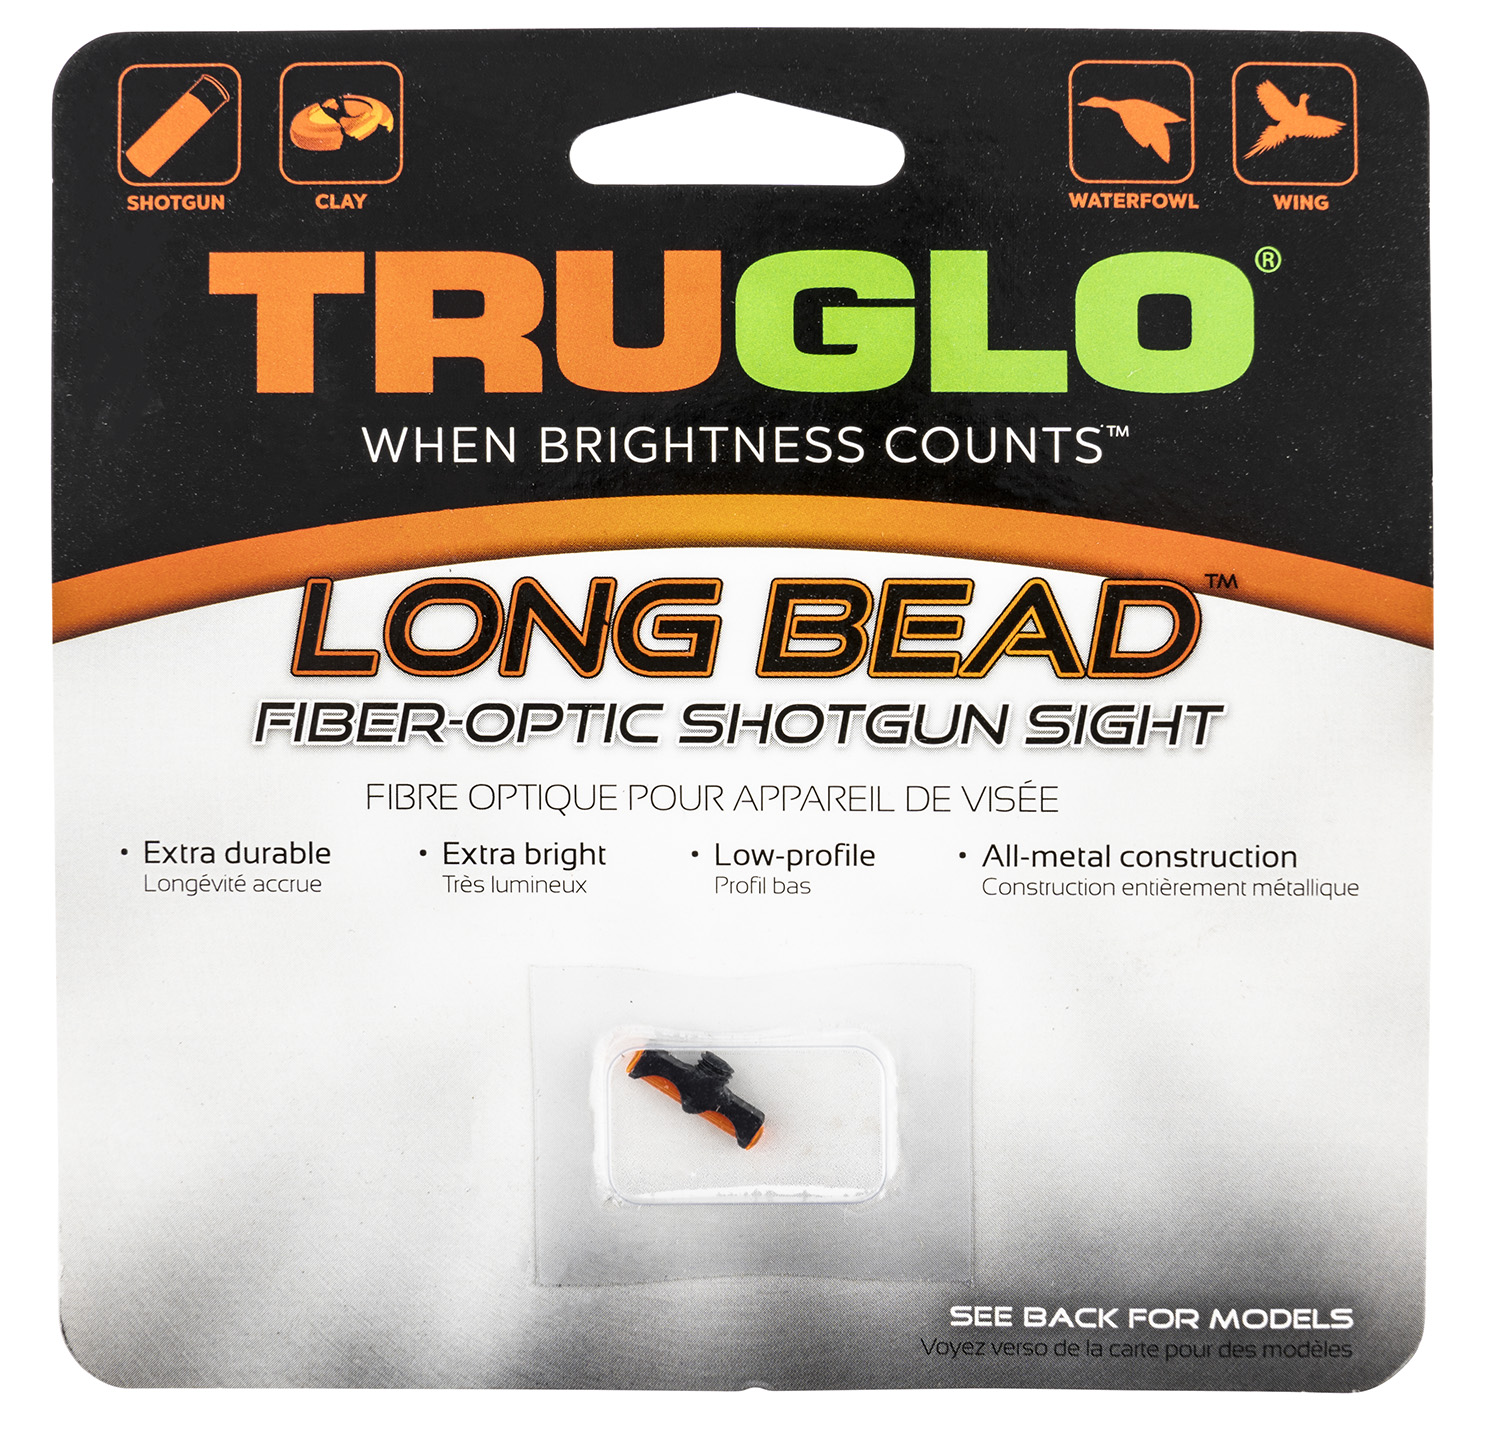 Truglo TG947CGM Long Bead Shotgun Sight Beretta & Benelli Green